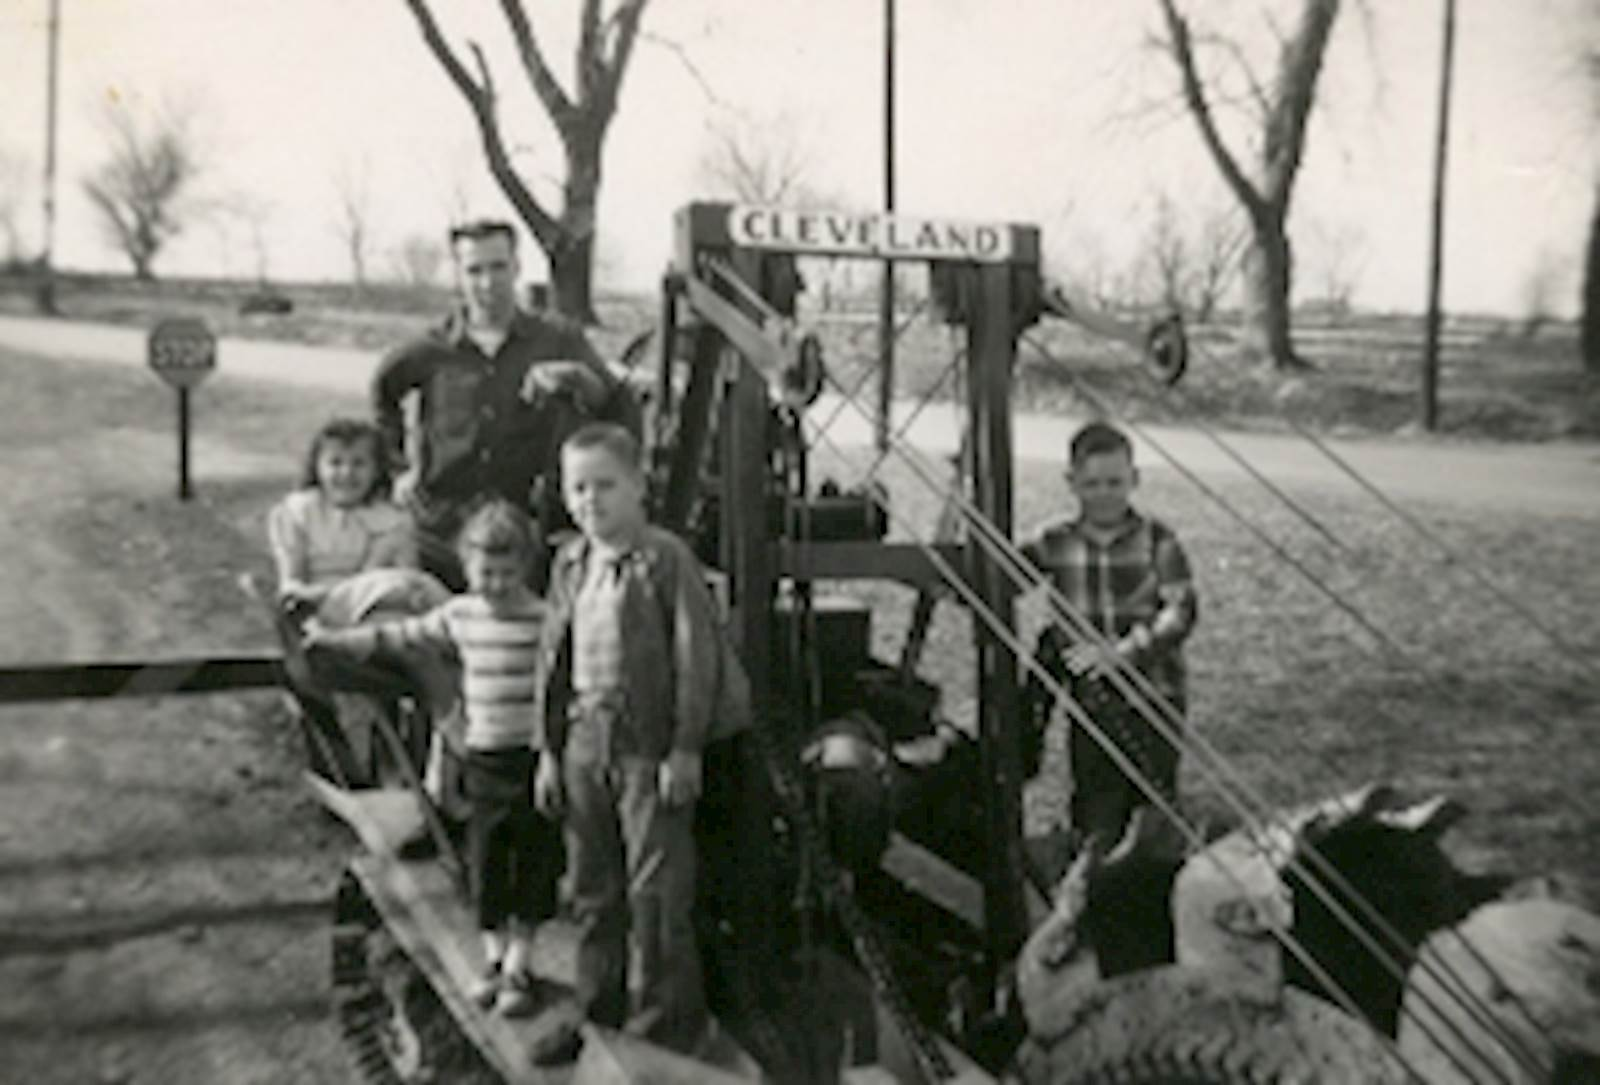 Catlin and Renfro Kids - Village of Sherman, Illinois - image